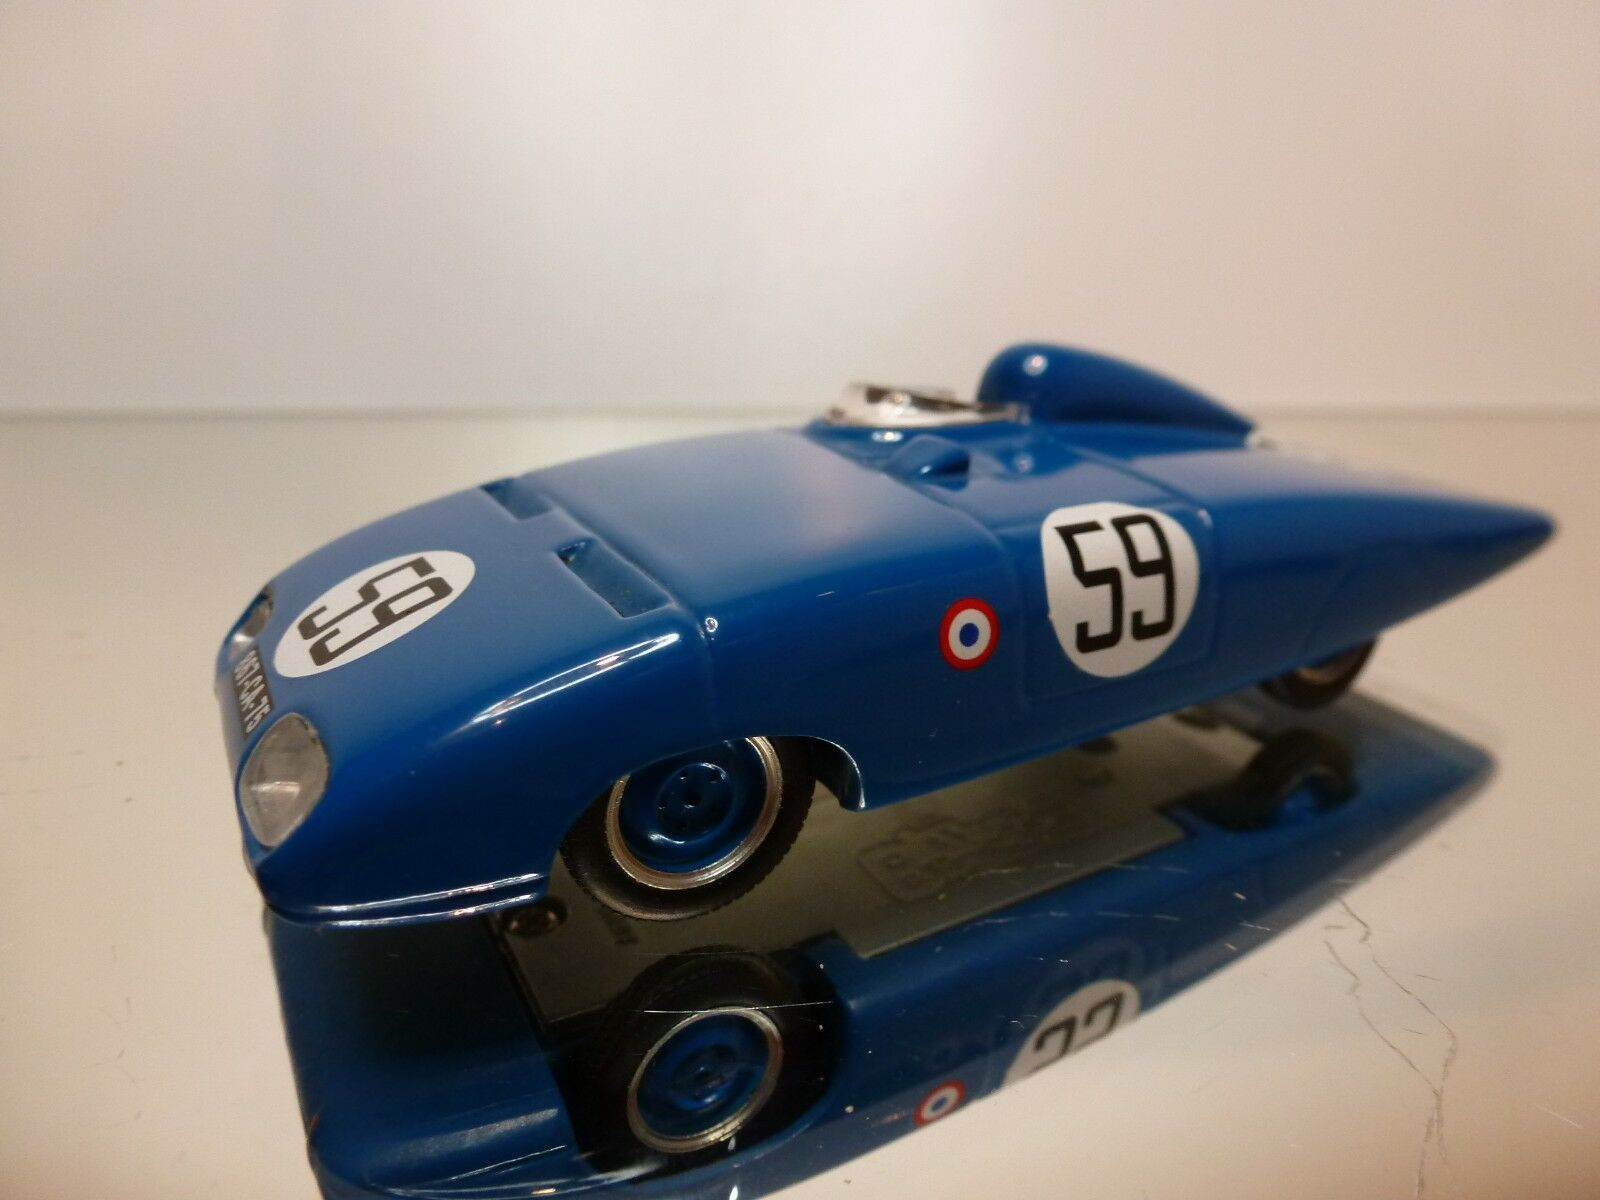 BIZARRE PANHARD X88 LEMANS LEMANS LEMANS 1954 - blueE 1 43 - EXCELLENT CONDITION - 36 35 2cf09b